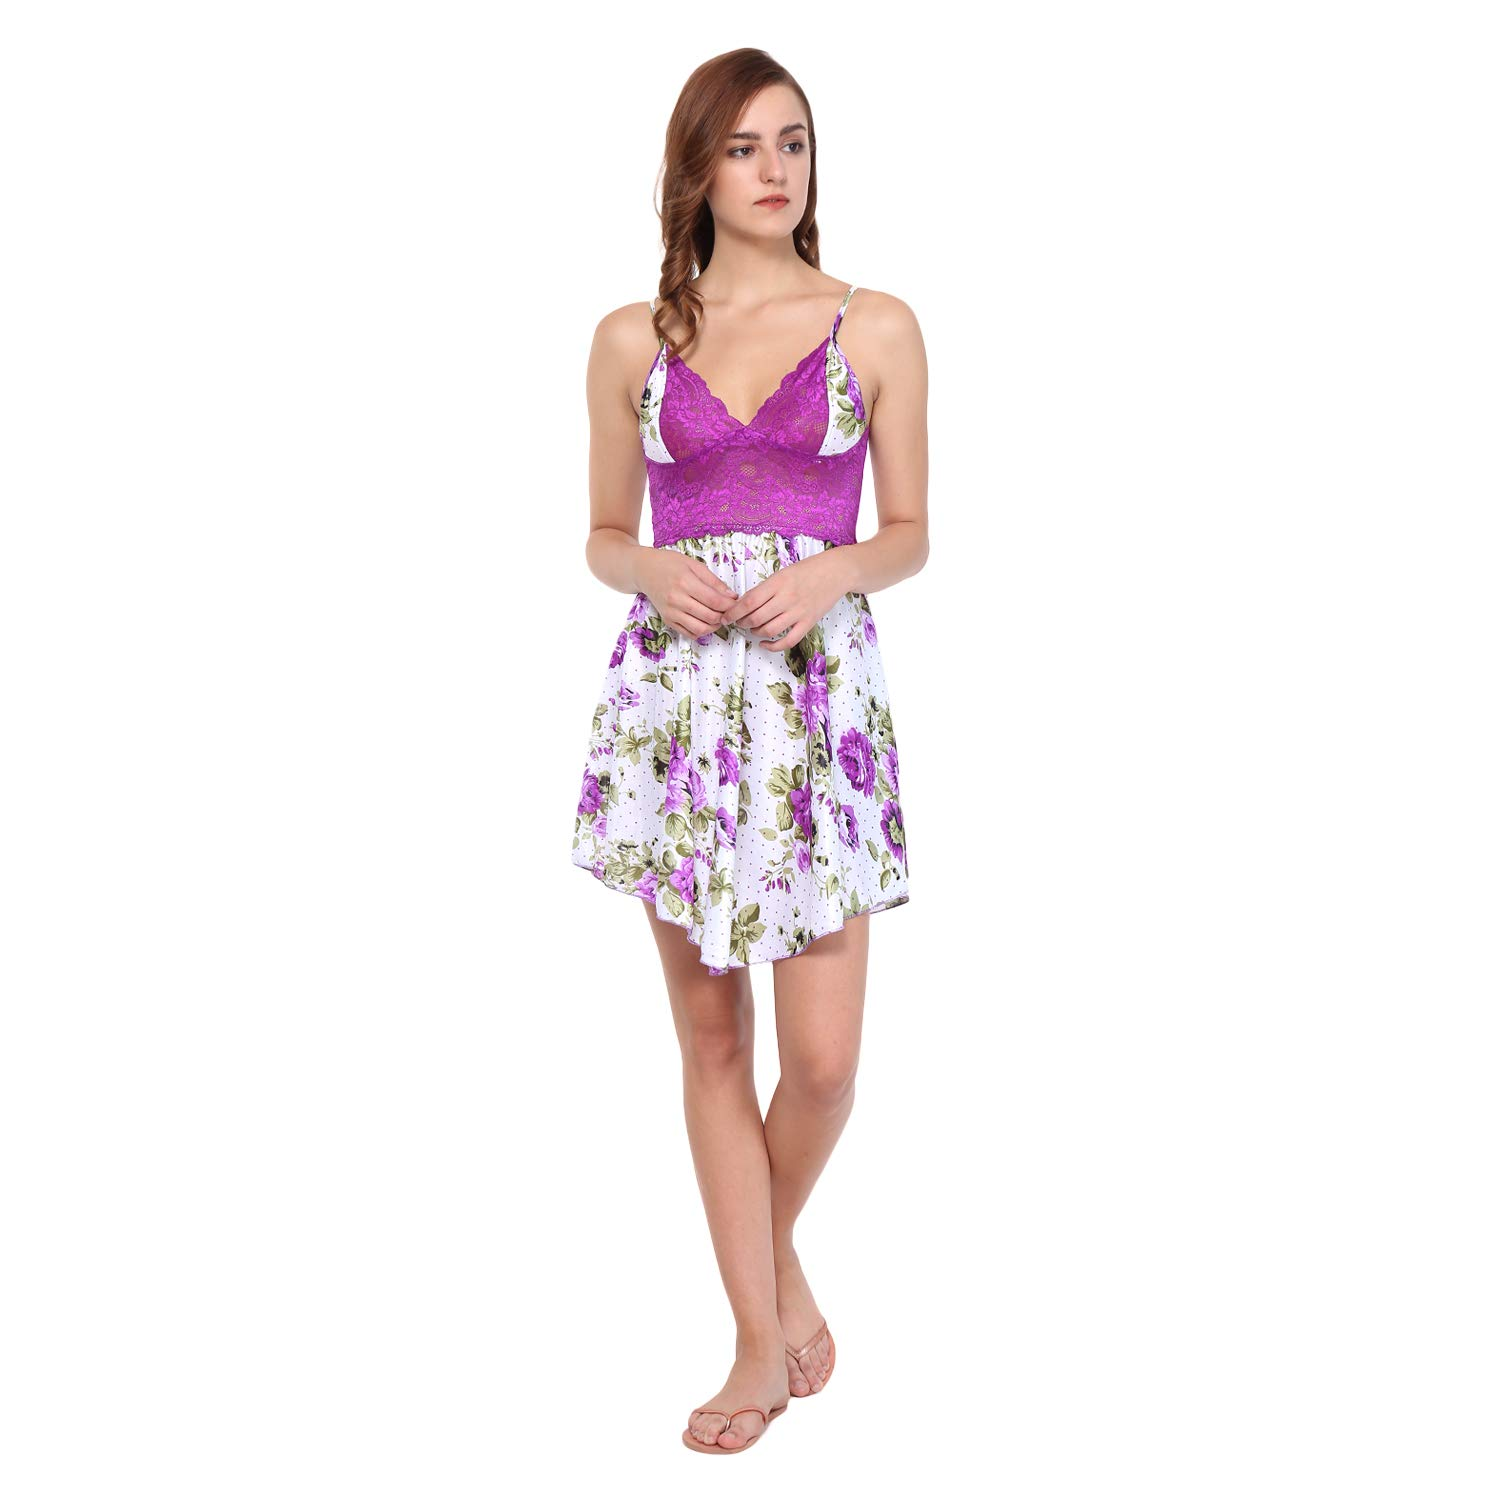 d2c22be83e87 Eldino Floral Print Babydoll Dress for Sexy Lingerie - Purple: Amazon.in:  Clothing & Accessories